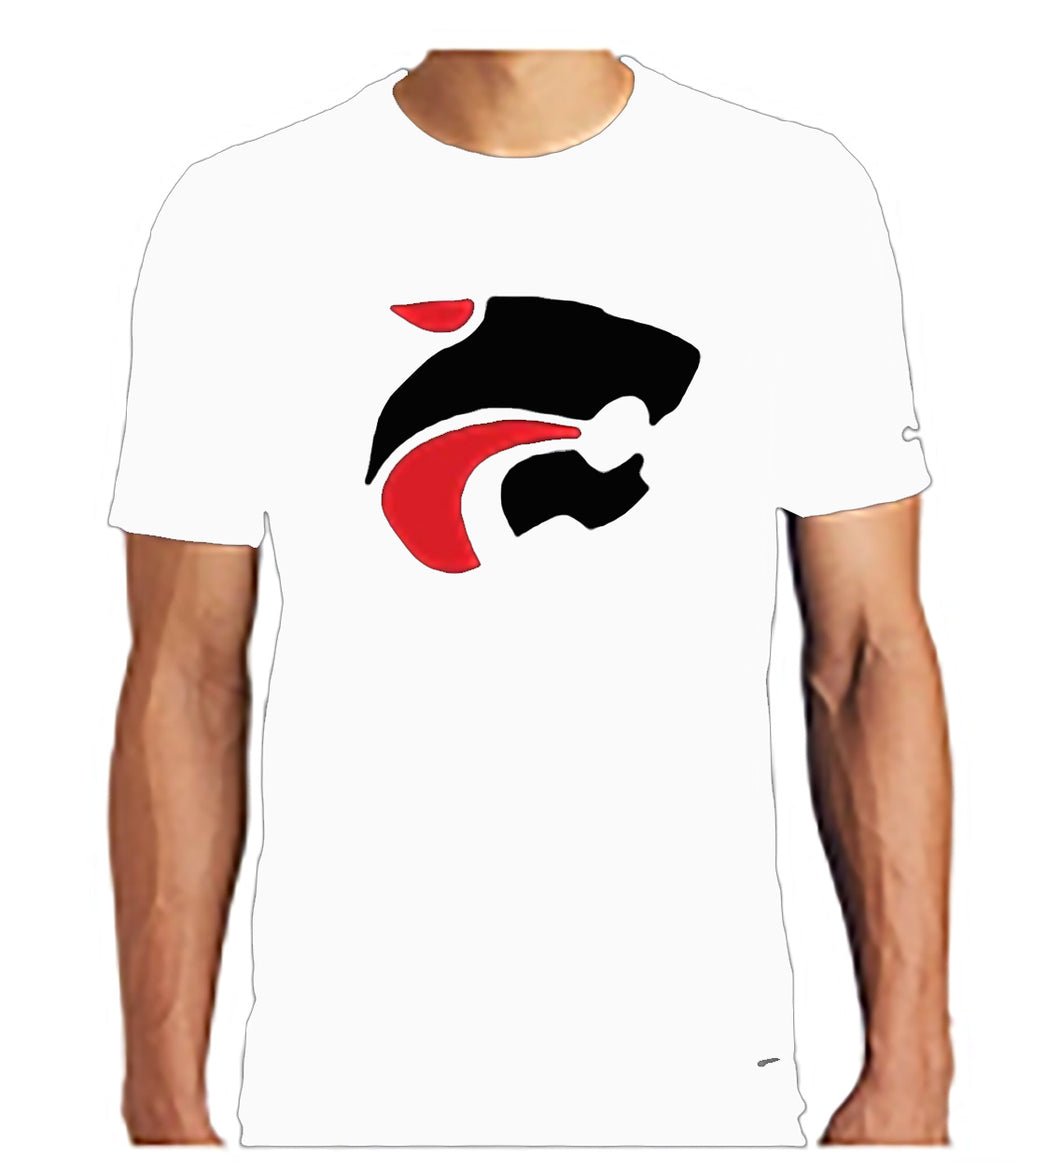 Dri Fit Performance T- Shirt